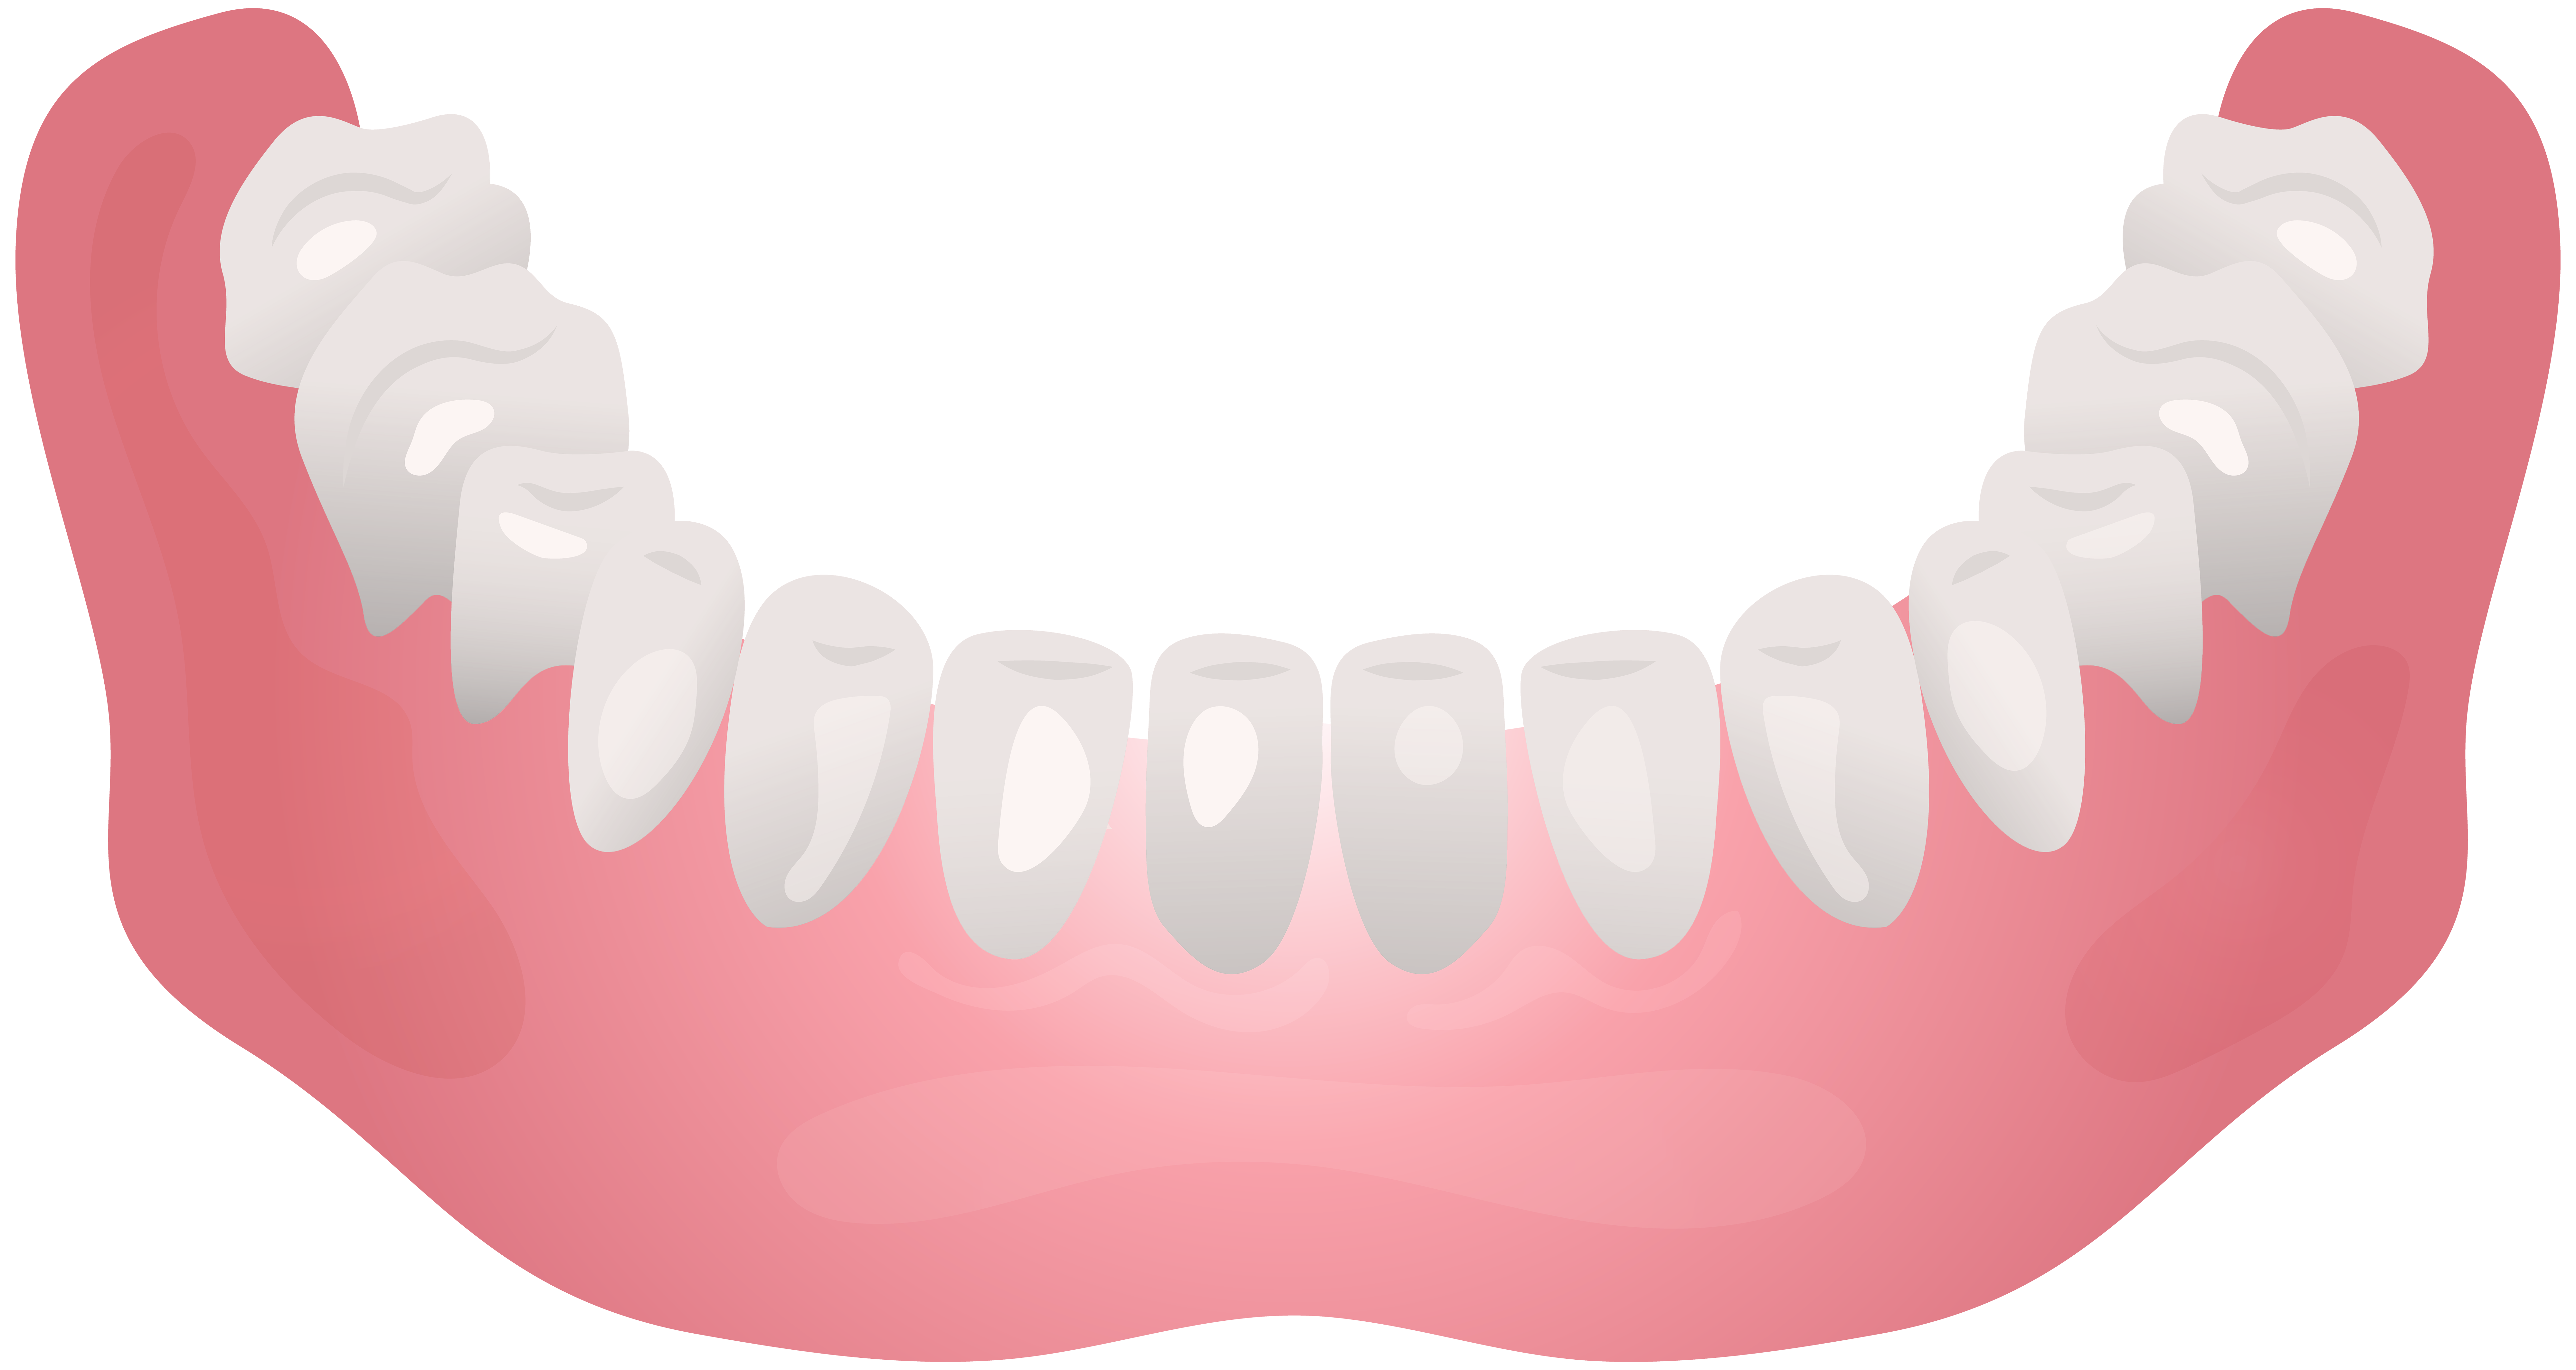 Bottom jaw clip art. Clipart smile human mouth